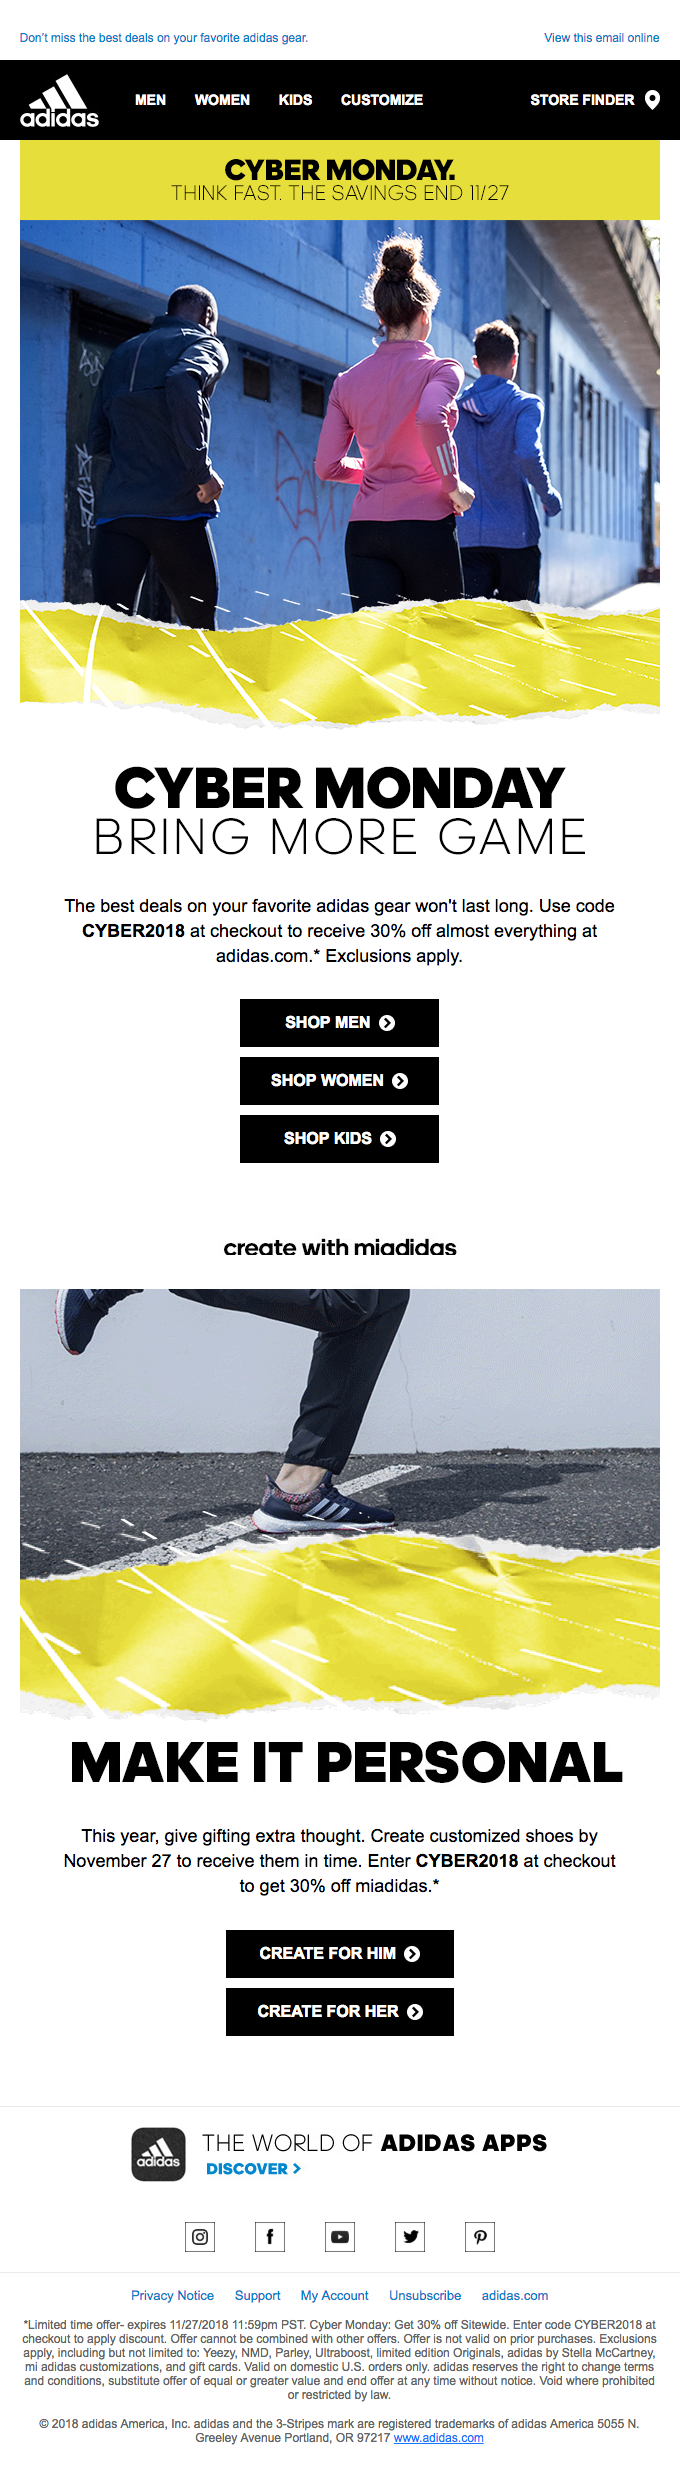 Adidas used their running brand to emphasize Cyber Monday.